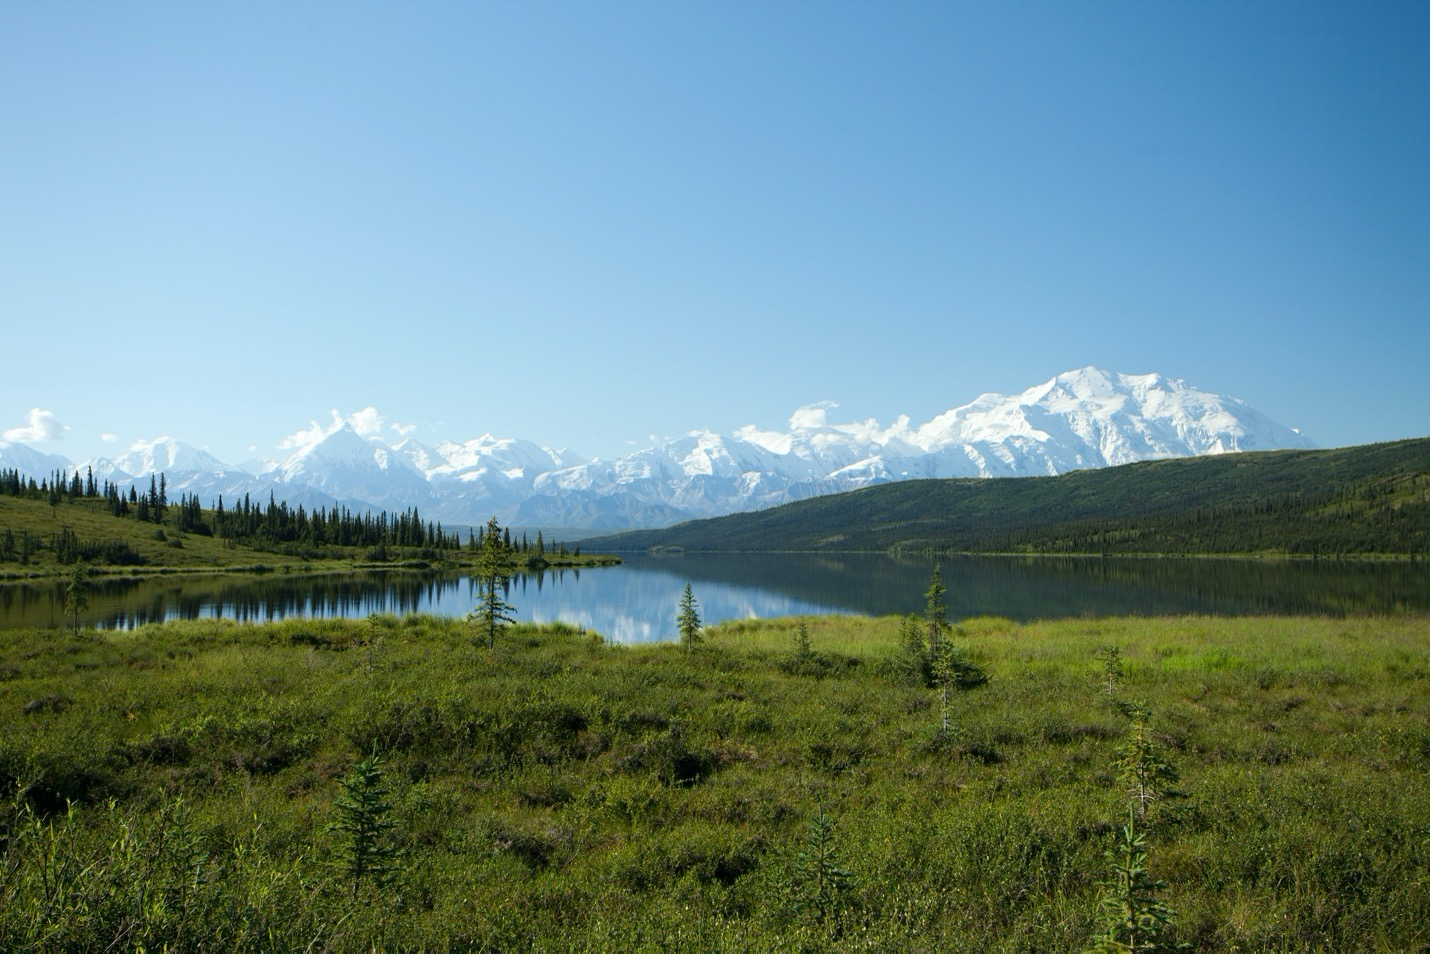 Denali rises above the rest of the range with a reflection upon